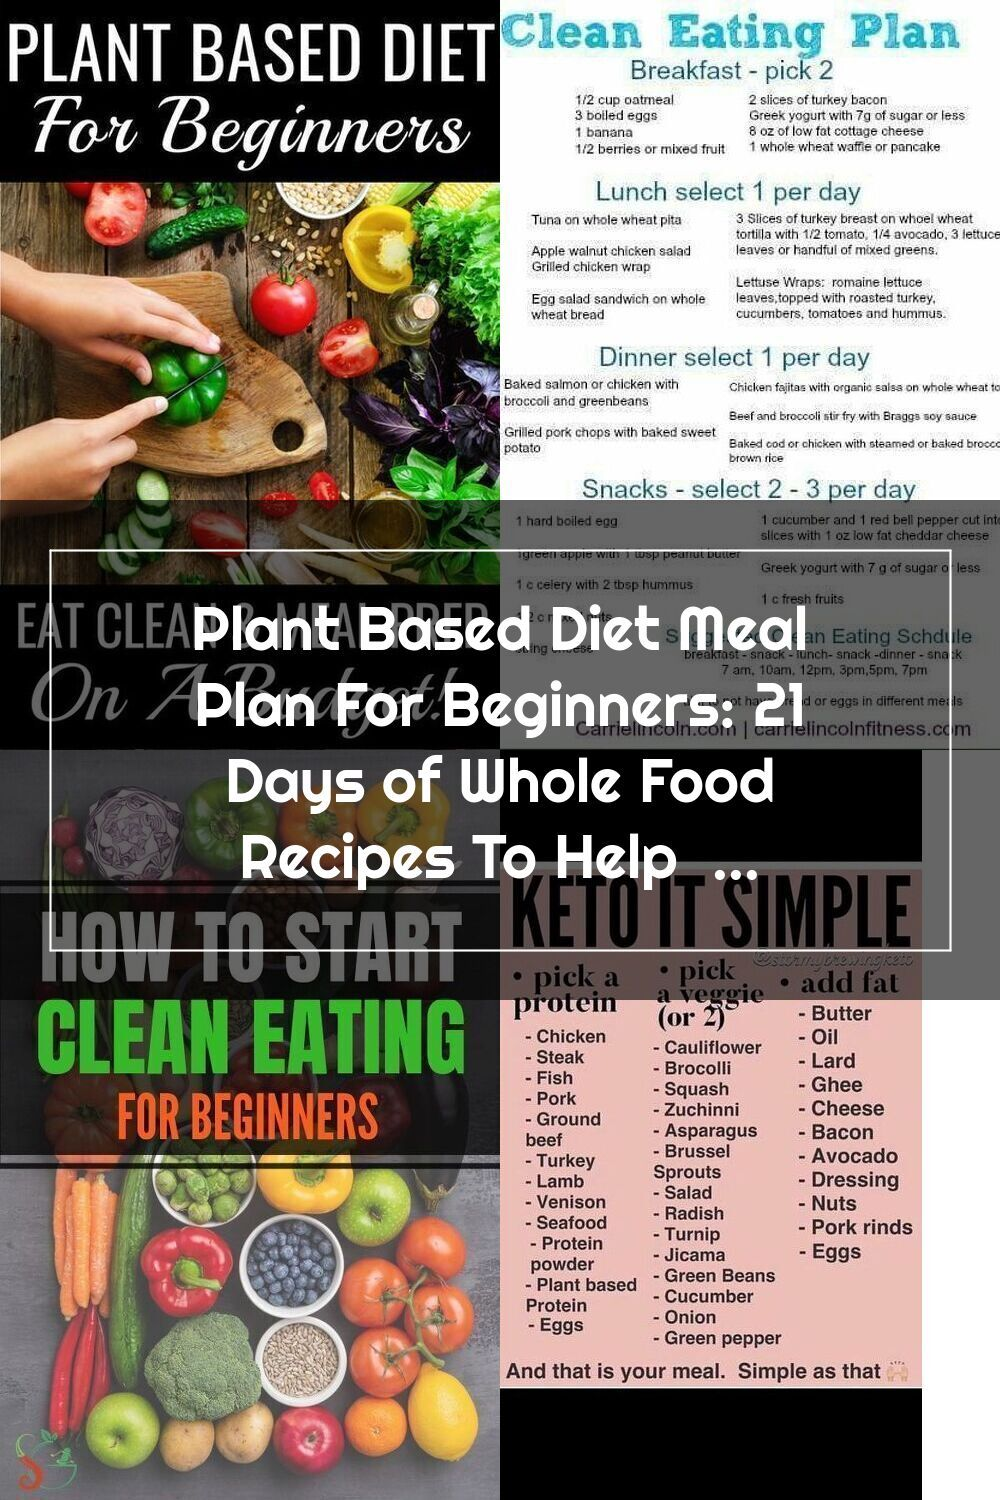 Plant Based Recipes For Beginners This Easy Plant Based Diet Meal Plan Is Perfect For Begi In 2020 Plant Based Diet Meal Plan Plant Based Whole Foods Plant Based Diet